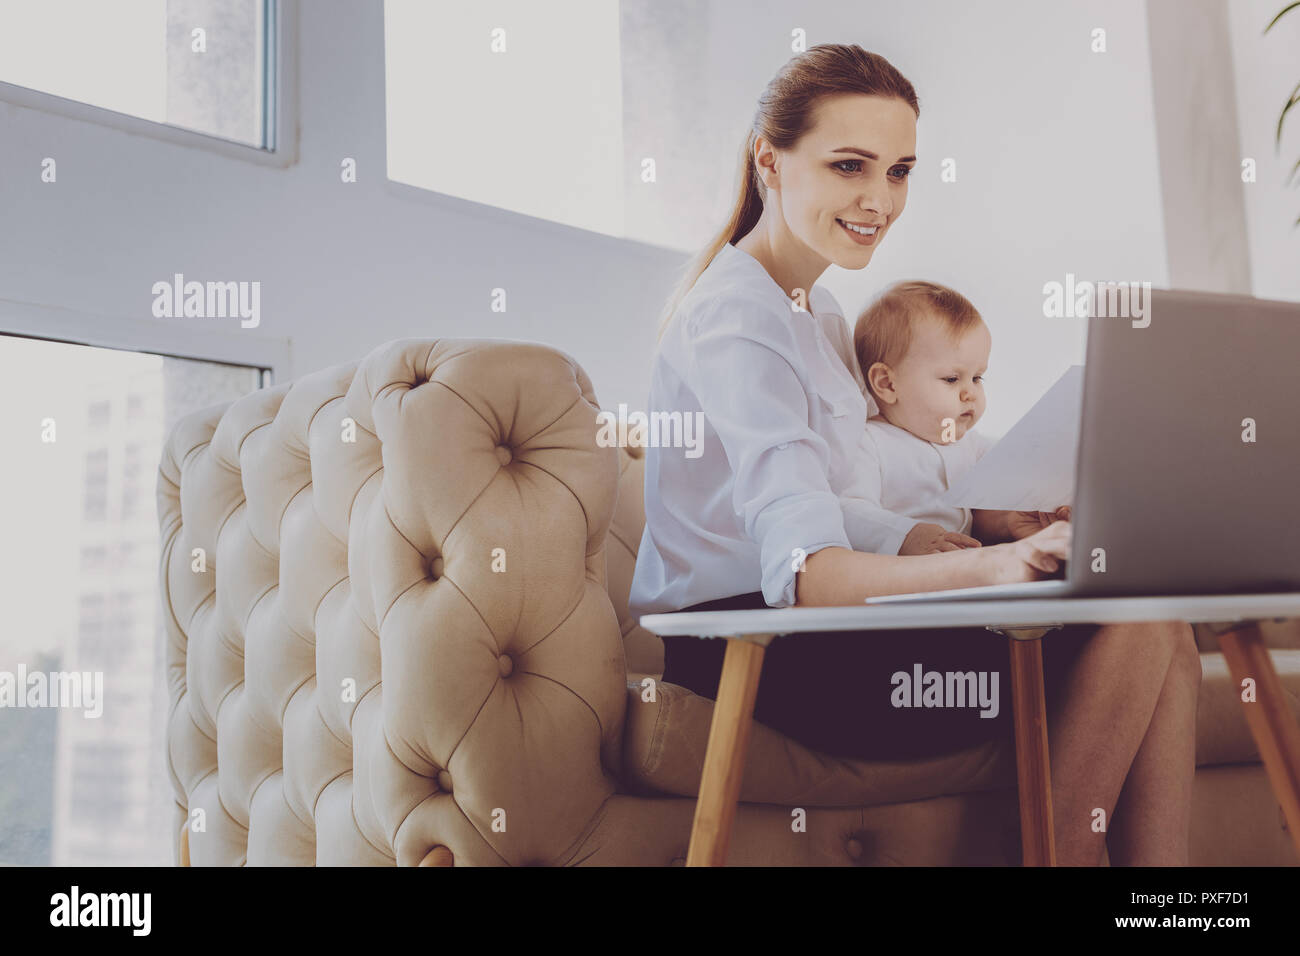 Prosperous sales manager feeling involved in distracting her newborn baby - Stock Image